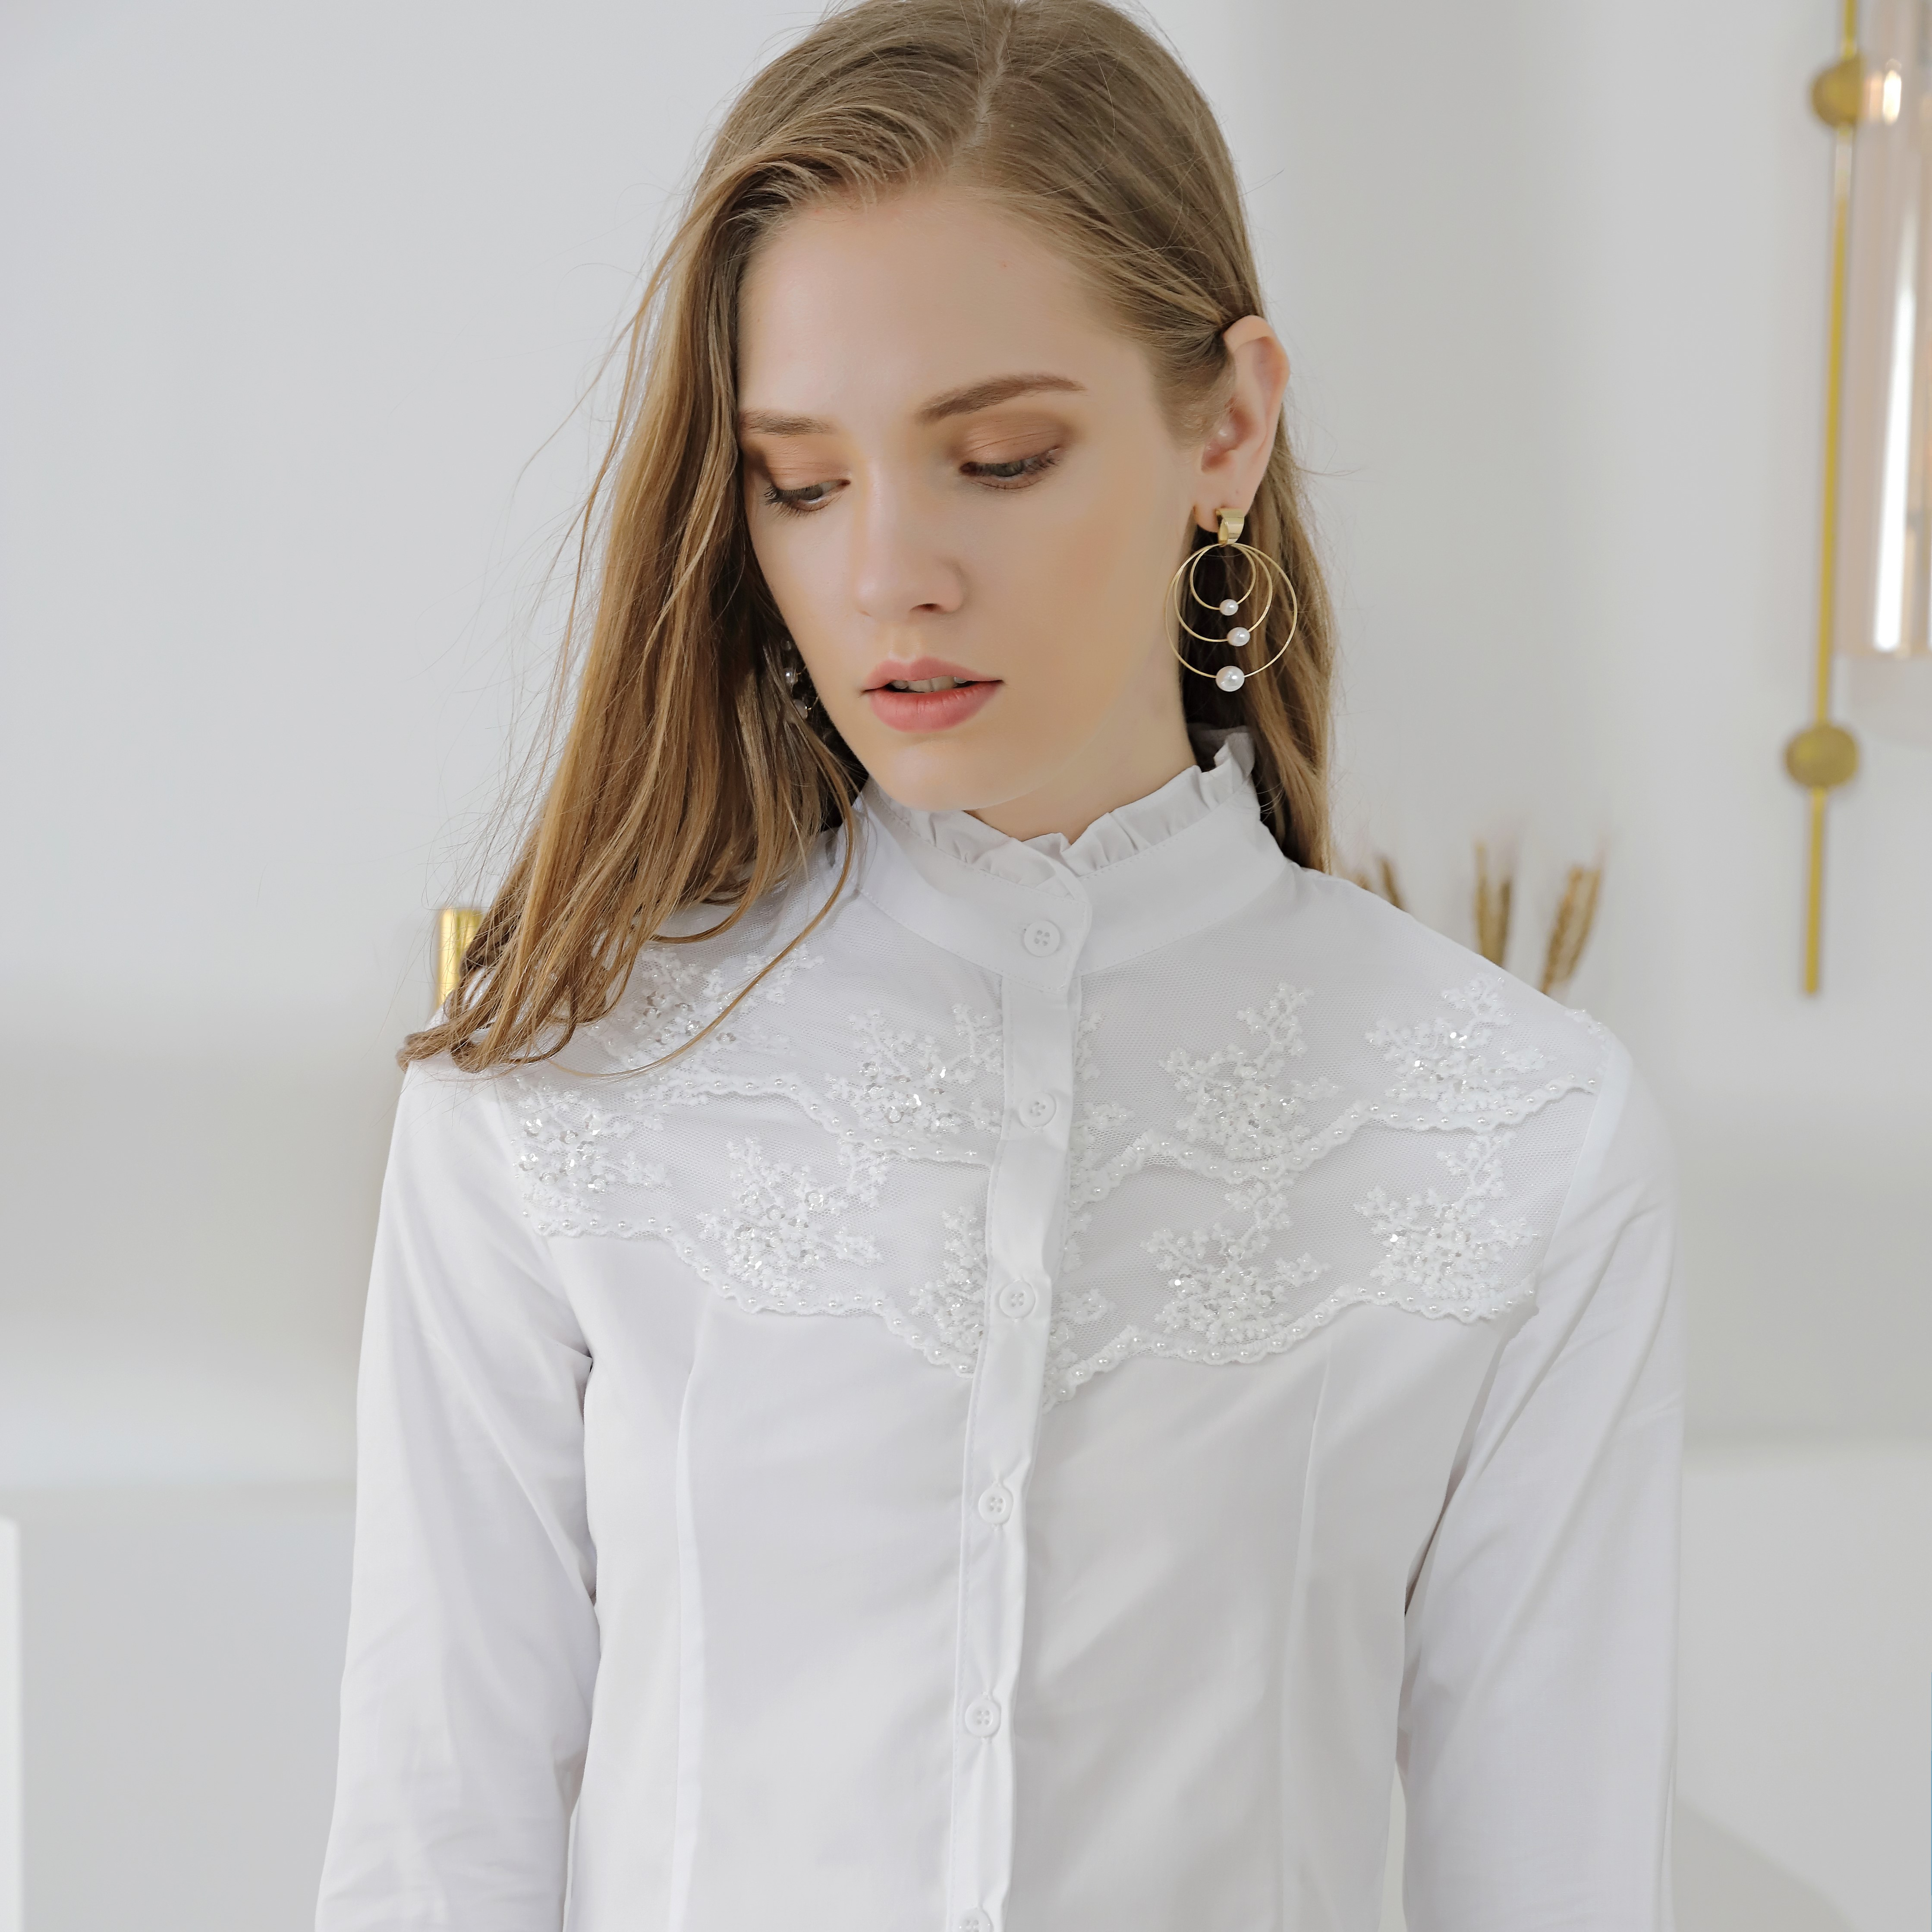 2020 summer new retro lotus collar long sleeve pin bead lace splicing white shirt top for women